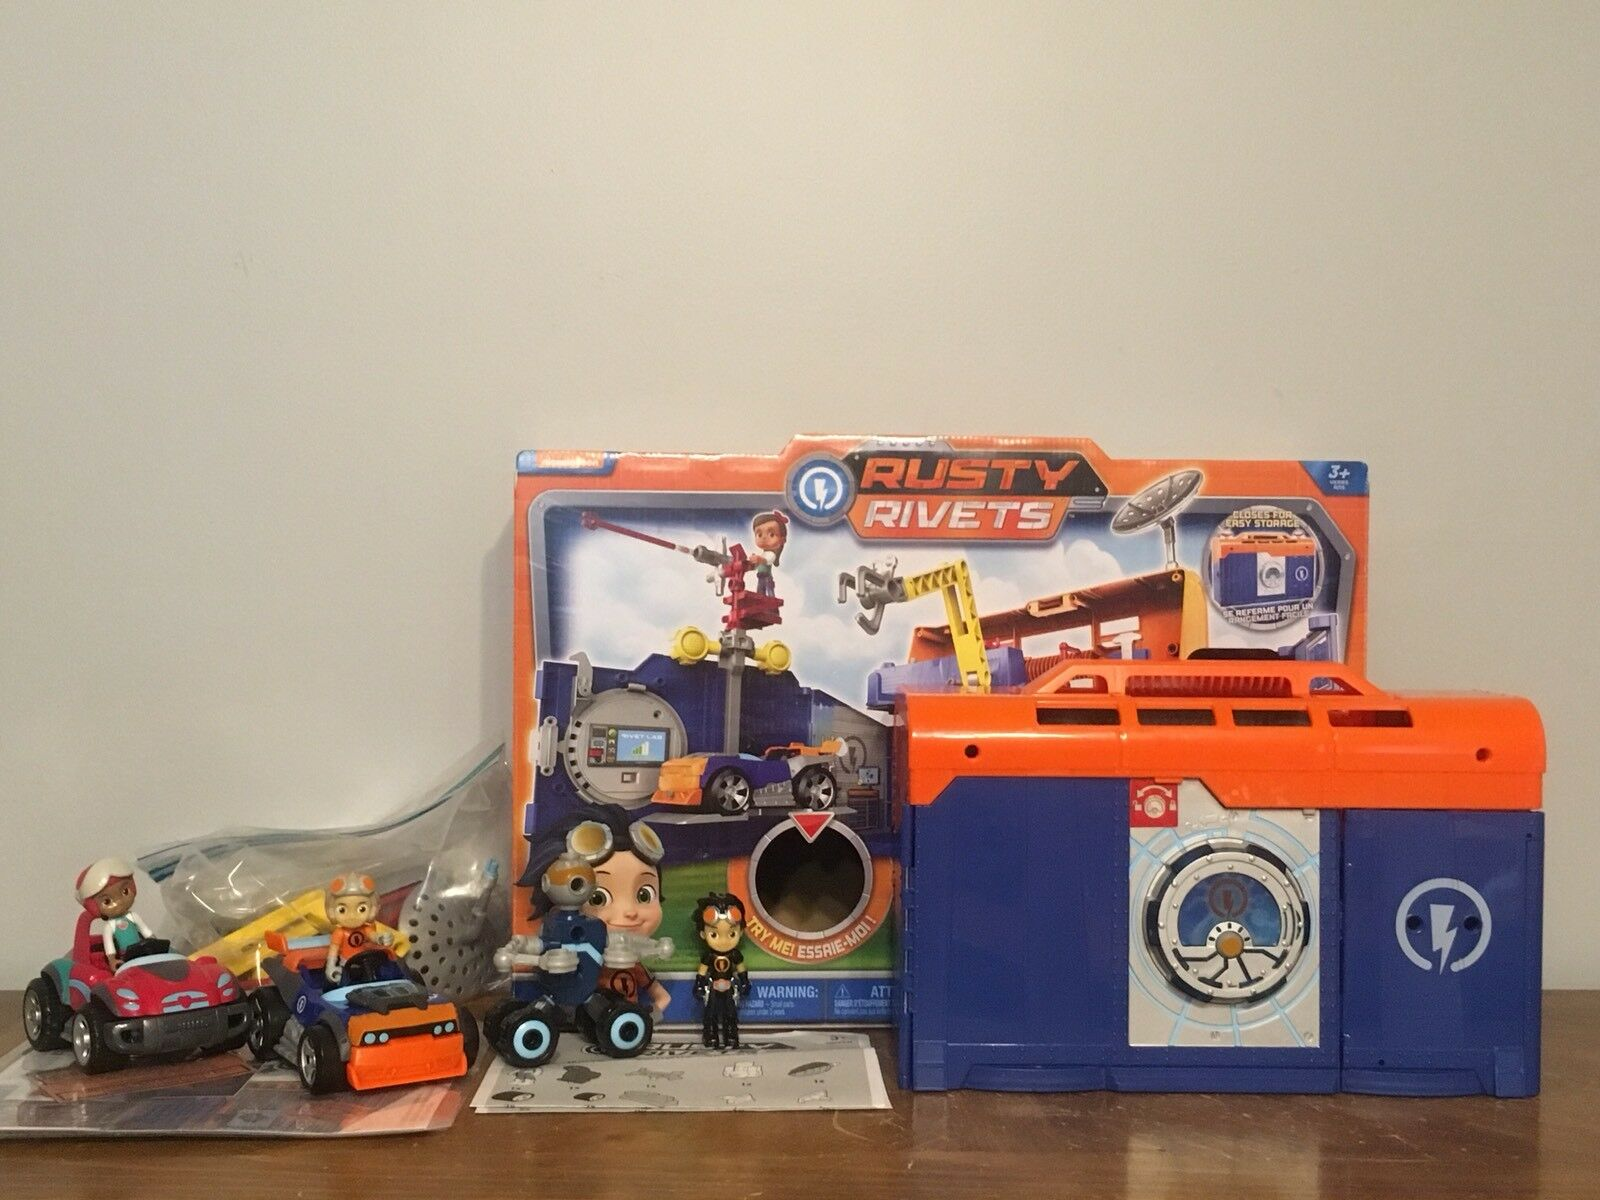 Rusty Rivets - Rivet Lab Playset - Toys R Us Exclusive Preowned With Extras